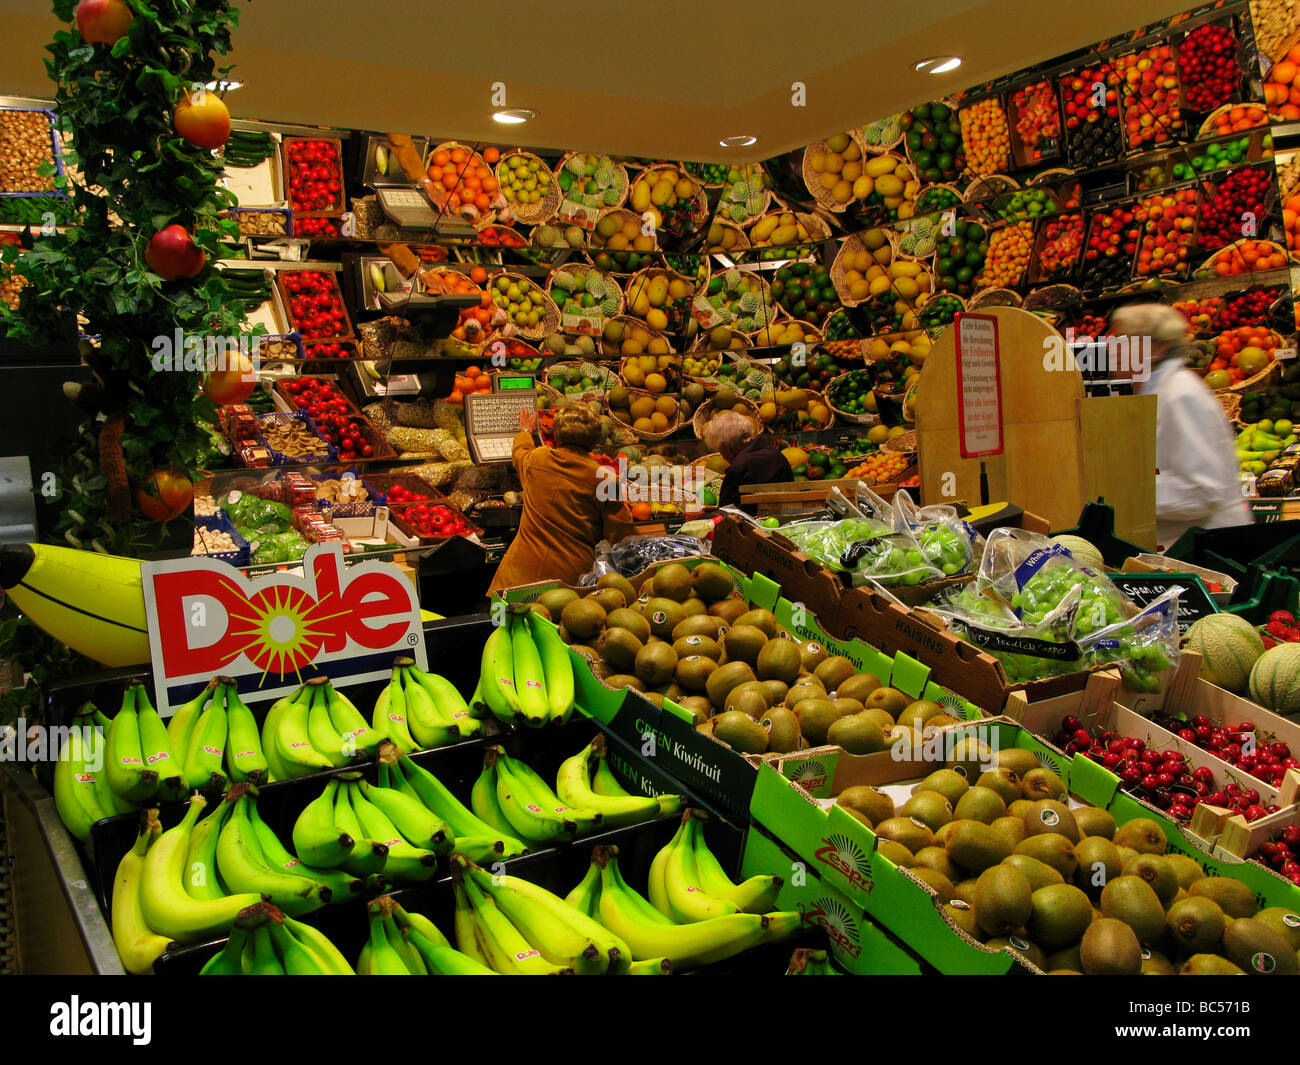 Woman Shoppers in a Fruit and Vegetable Shop - Stock Image